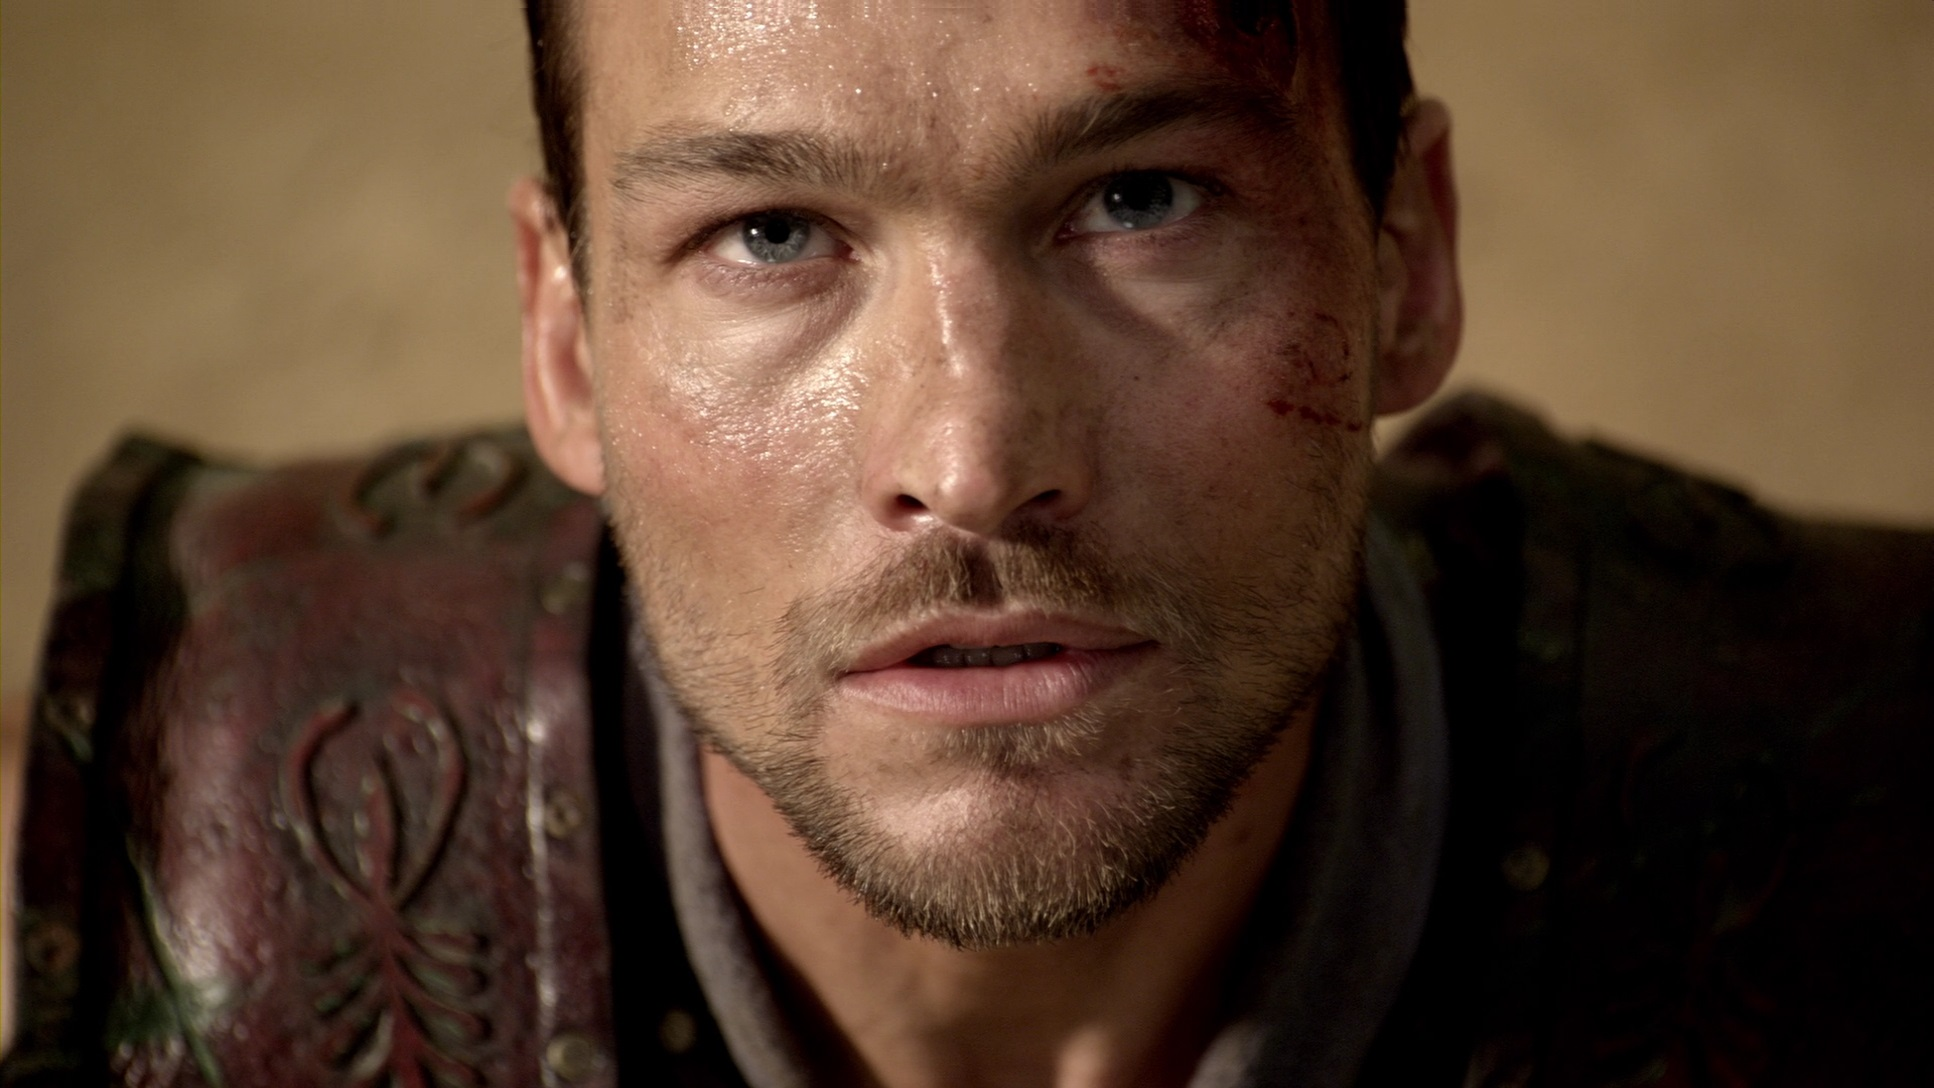 Andy-Whitfield-andy-whitfield-37437130-1934-1088 jpgAndy Whitfield